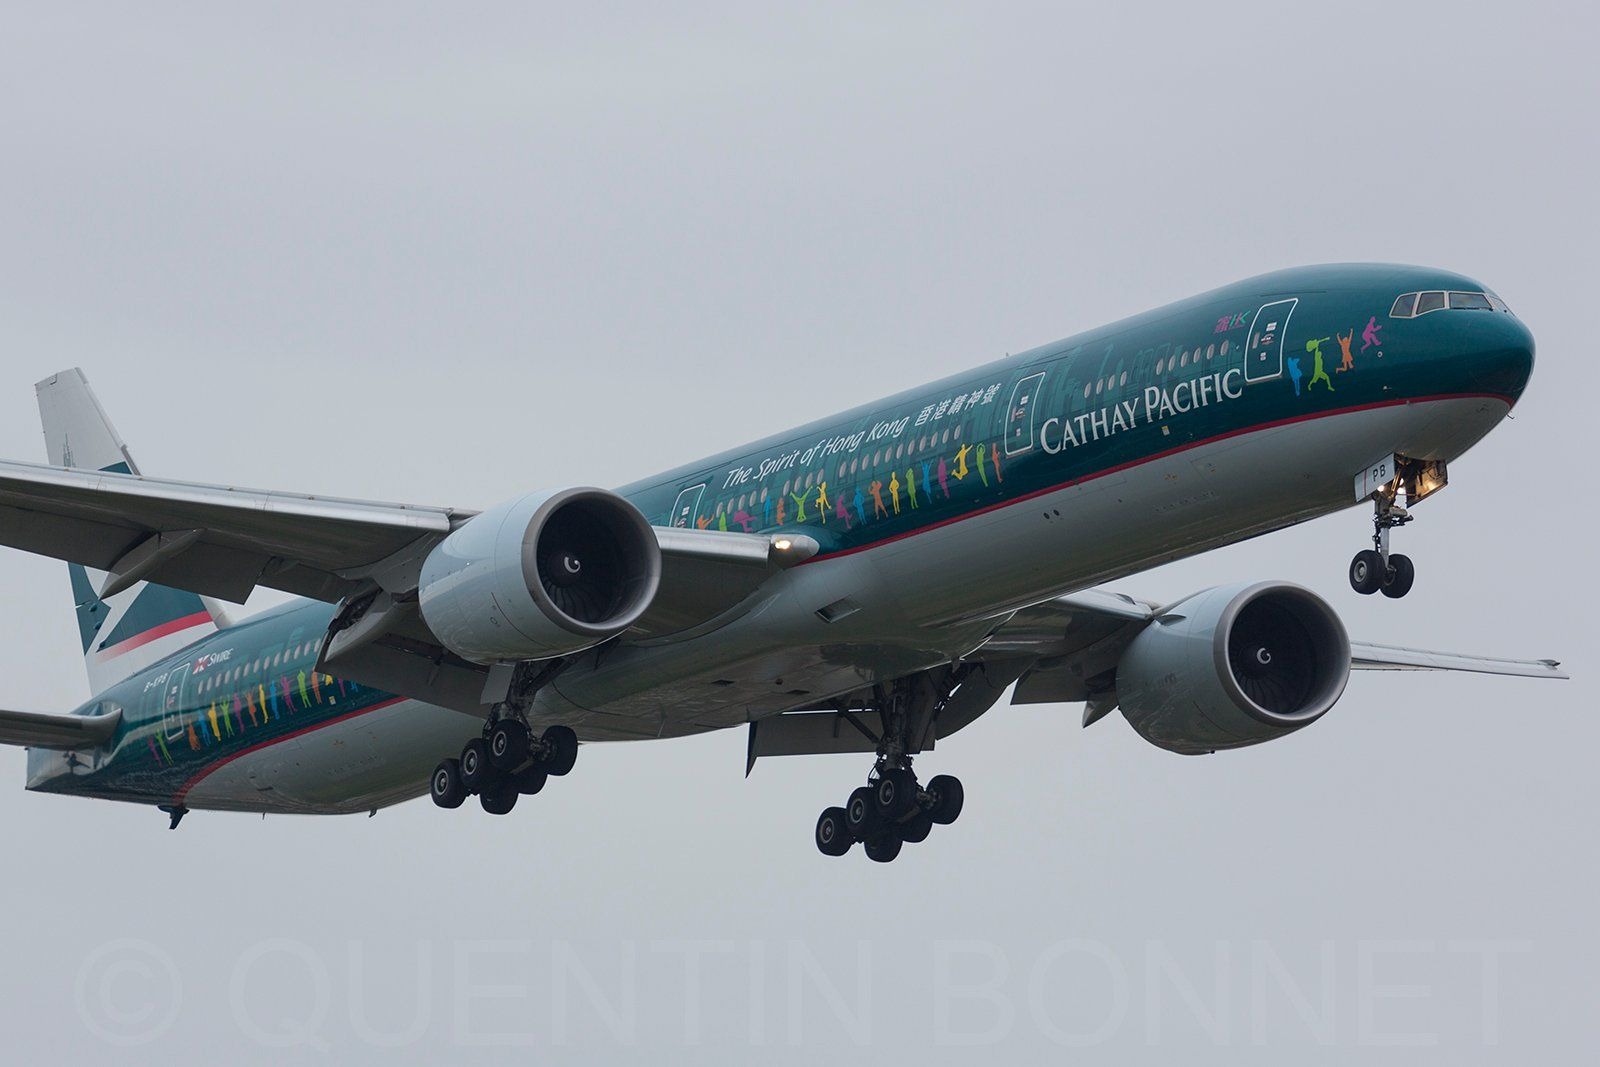 cathay-pacific-boeing-777-367er-b-kpb 19633282548 o